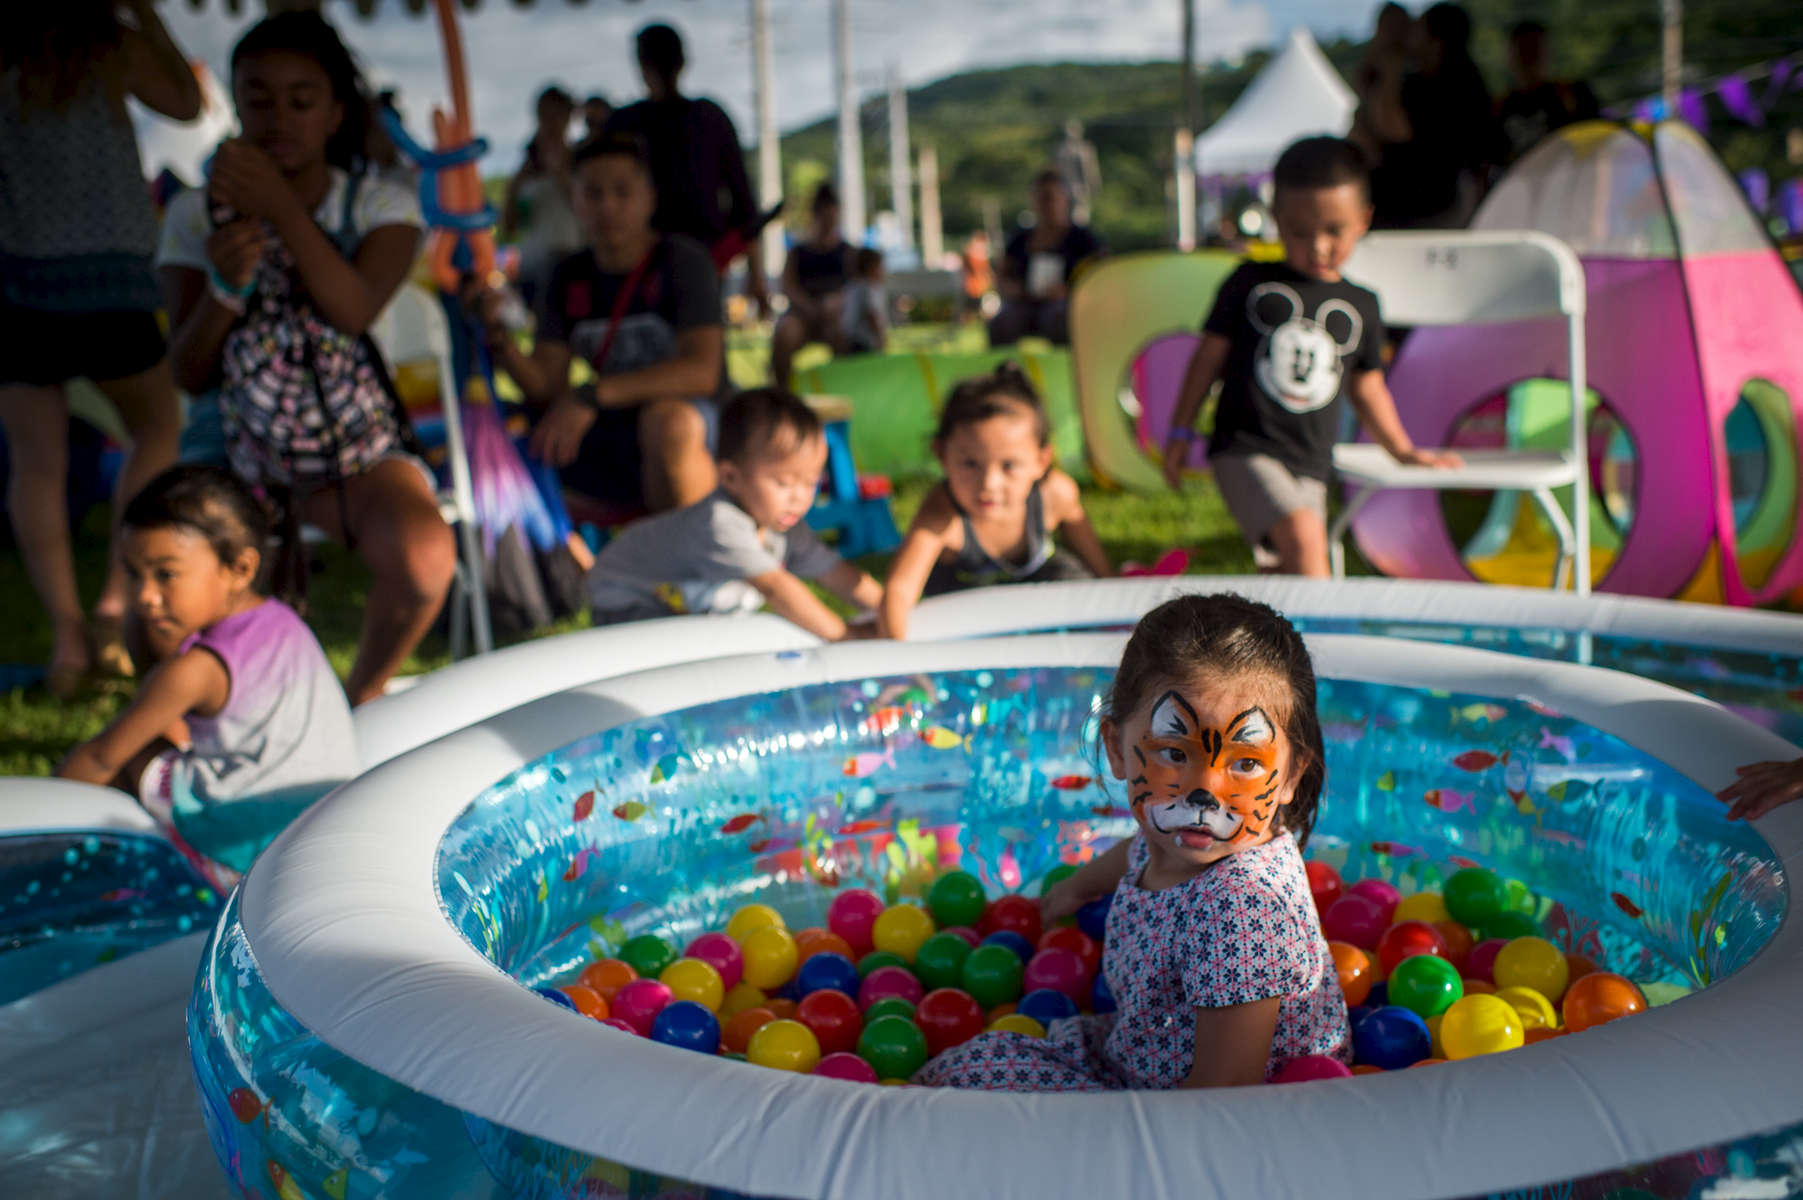 Nina Lee, 4, spends her Saturday at the 3rd Annual Sagua Mañagu Birthing Center celebration carnival set up at the Governor's Complex, Adelup, in Hagåtña, Guam. (Aug 12, 2017)Photo by Nancy Borowick